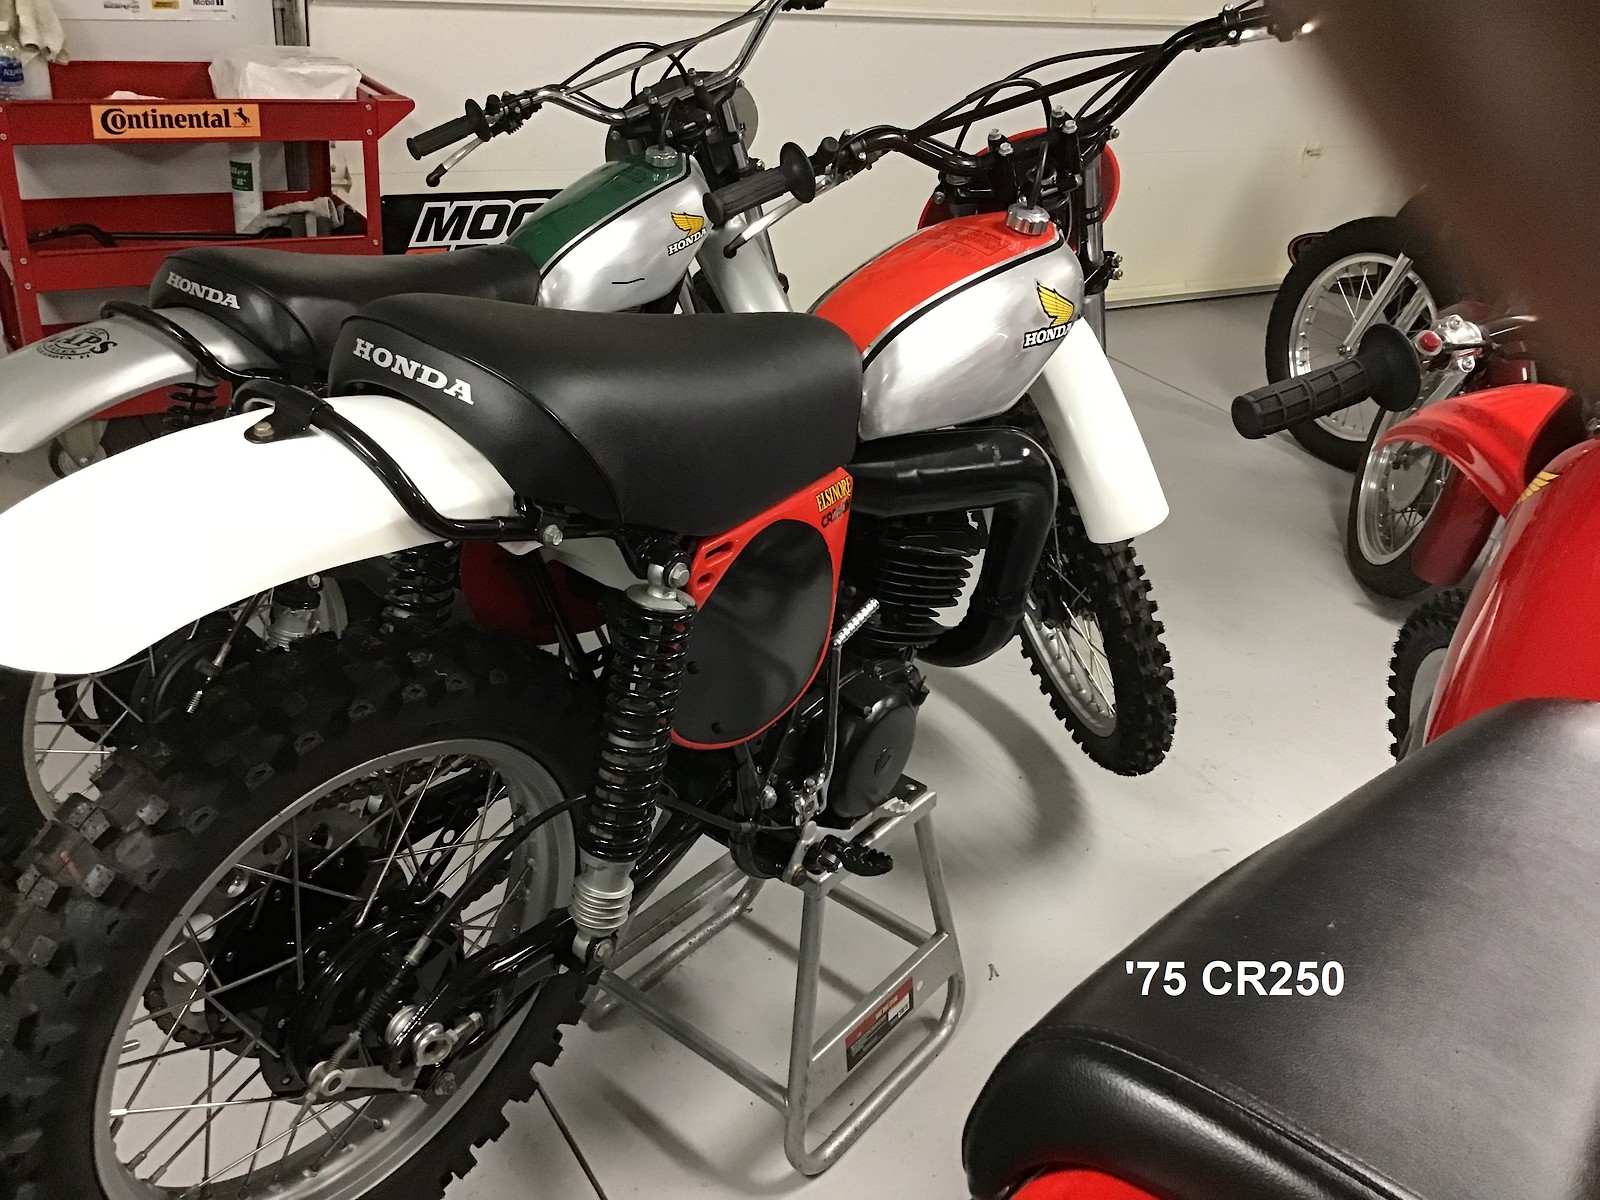 Bikes Coming Up for Sale - Old School Moto - Motocross Forums